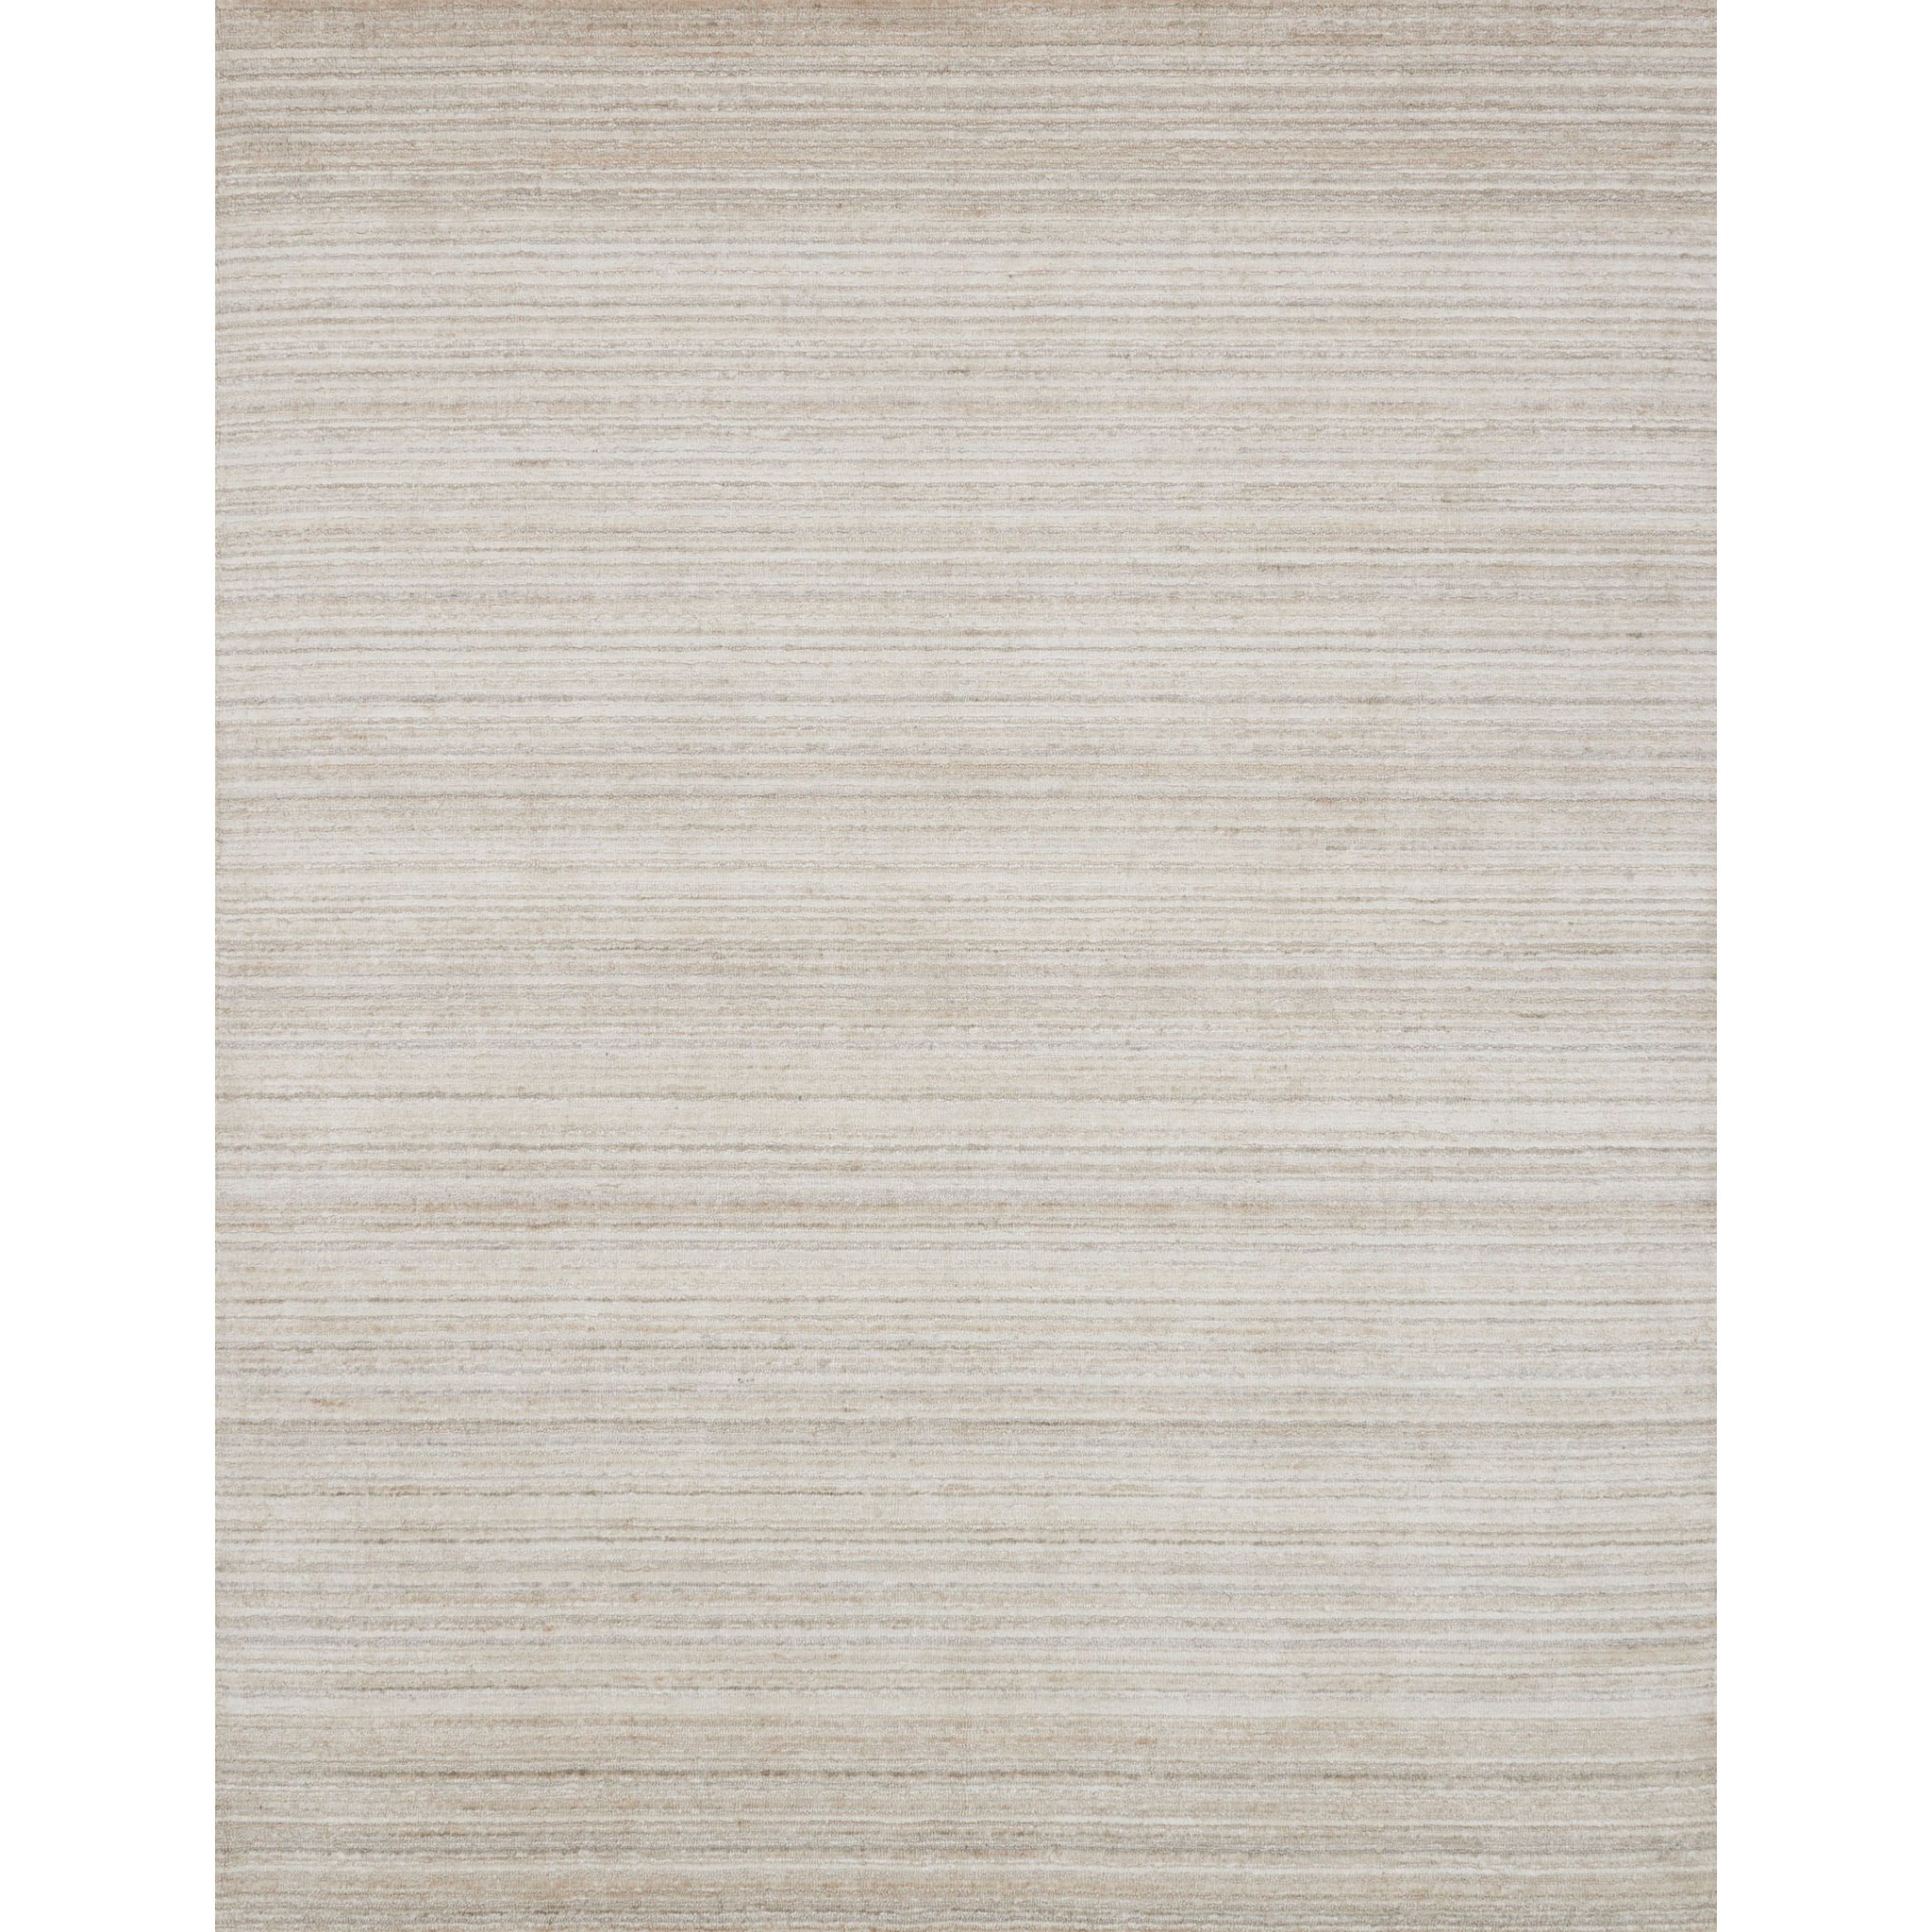 "Loloi Rugs Haven 12'-0"" x 15'-0"" Area Rug - Item Number: HAVEVH-01IVNAC0F0"